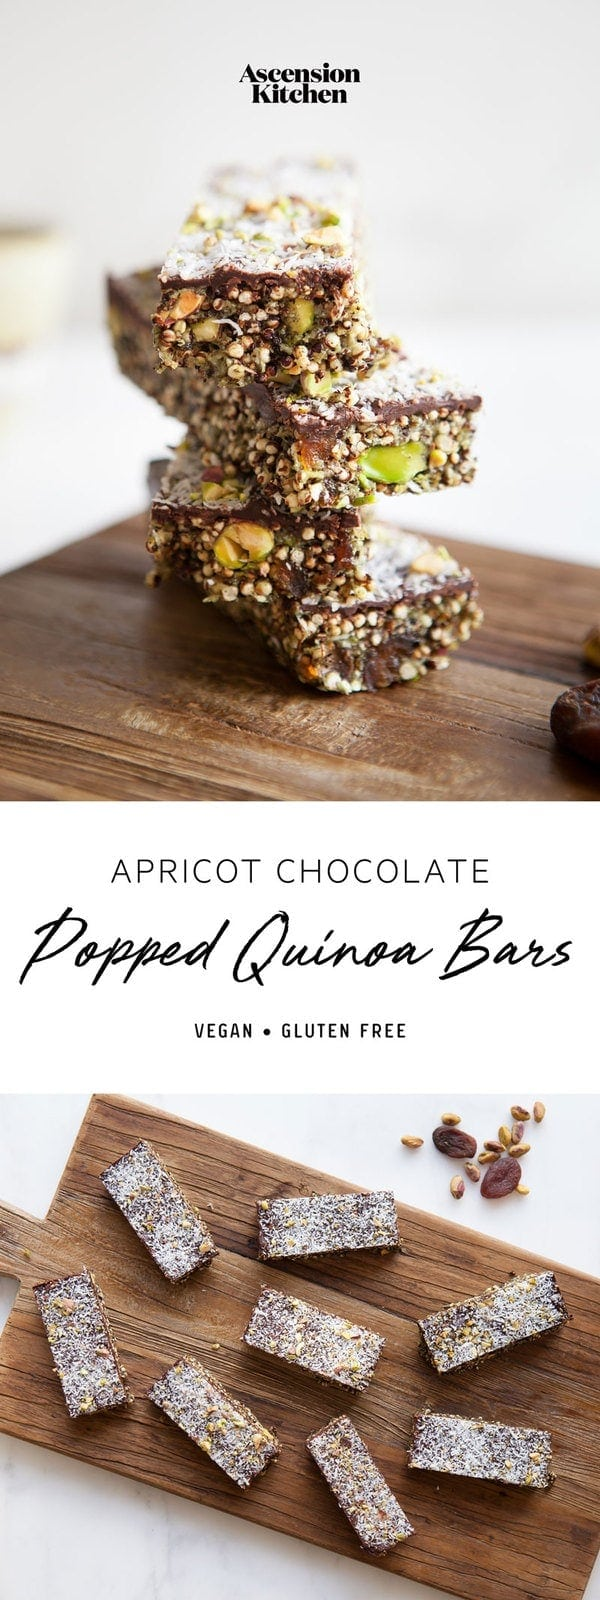 No bake Popped Quinoa Bars made with dried apricot and pistachio, with a layer of chocolate over the top. These homemade protein bars are great on the go! #quinoabars #nobakequinoabars #quinoabarshealthy #quinoabarsrecipes #quinoabarspuffed #quinoabarsprotein #quinoabarsvegan #quinoabarsnobake #quinoabarseasy #quinoabarsnooats #quinoabarsglutenfree #quinoabarskids #AscensionKitchen // Pin to your own inspiration board! //